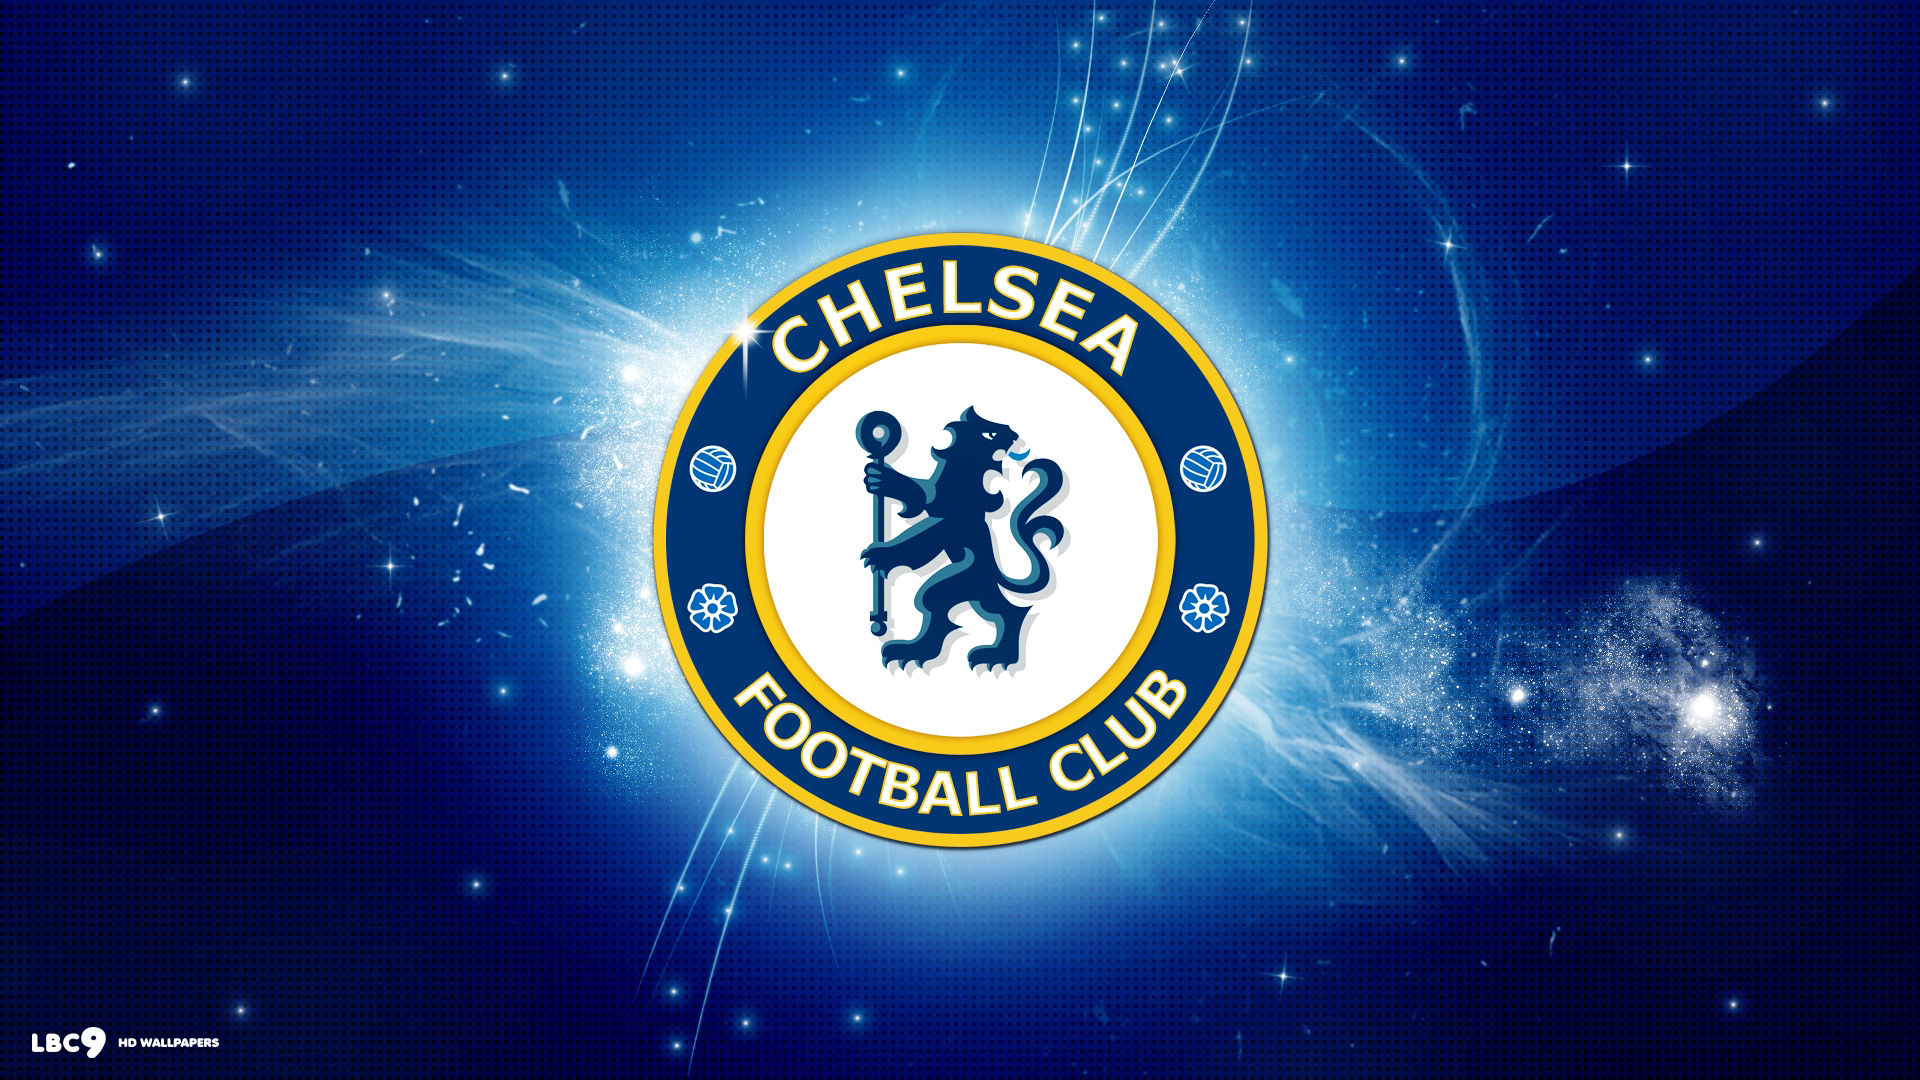 Cool Chelsea Wallpaper